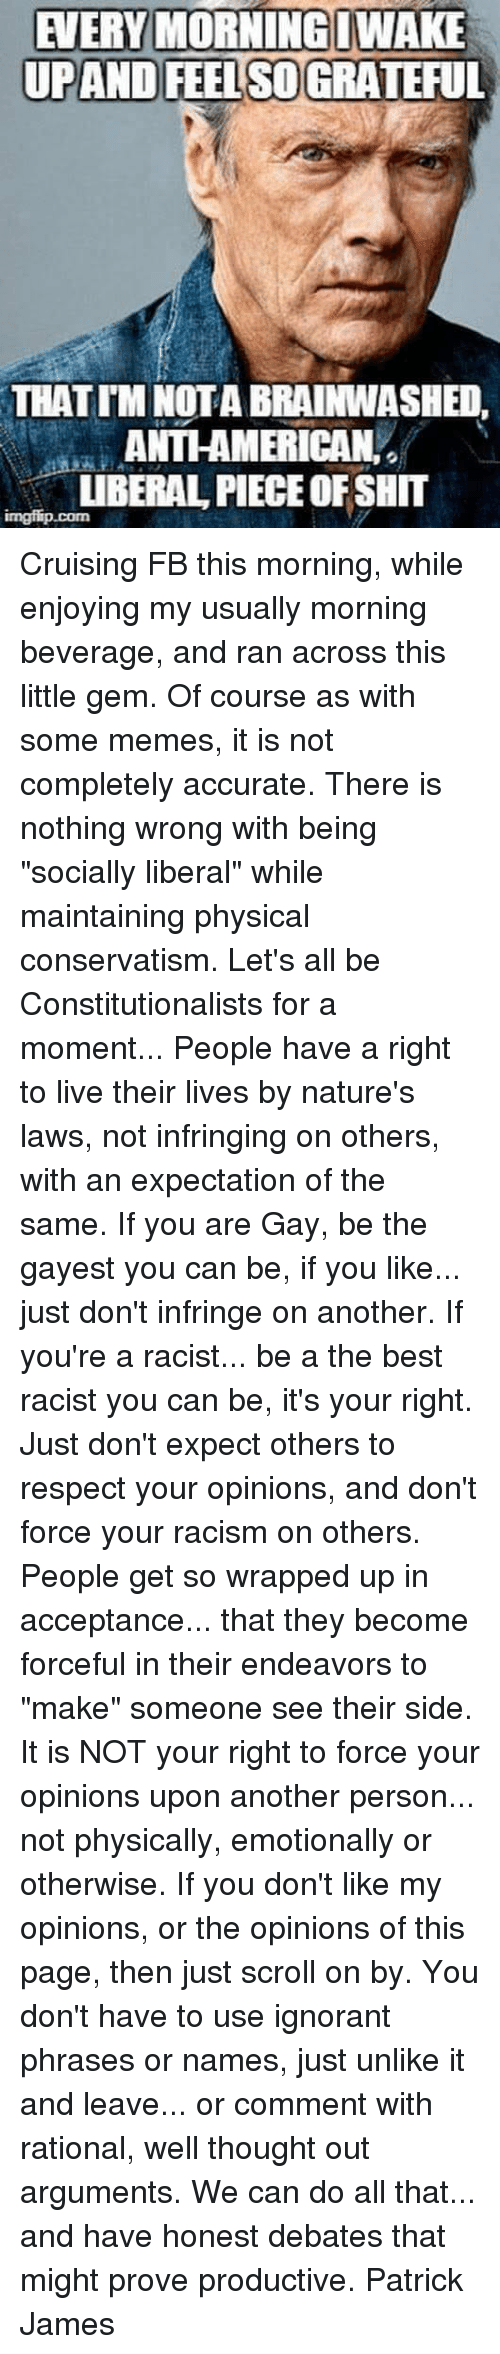 "rational: EVERY MORNING WAKE  UPAND FEEL SO GRATEFUL  THAT TM NOTA BRAINWASHED,  ANTI-AMERICAN,  UBERAL PIECE OF SHIT Cruising FB this morning, while enjoying my usually morning beverage, and ran across this little gem. Of course as with some memes, it is not completely accurate. There is nothing wrong with being ""socially liberal"" while maintaining physical conservatism.   Let's all be Constitutionalists for a moment... People have a right to live their lives by nature's laws, not infringing on others, with an expectation of the same.   If you are Gay, be the gayest you can be, if you like... just don't infringe on another. If you're a racist... be a the best racist you can be, it's your right. Just don't expect others to respect your opinions, and don't force your racism on others.   People get so wrapped up in acceptance... that they become forceful in their endeavors to ""make"" someone see their side. It is NOT your right to force your opinions upon another person... not physically, emotionally or otherwise.   If you don't like my opinions, or the opinions of this page, then just scroll on by. You don't have to use ignorant phrases or names, just unlike it and leave... or comment with rational, well thought out arguments. We can do all that... and have honest debates that might prove productive.  Patrick James"